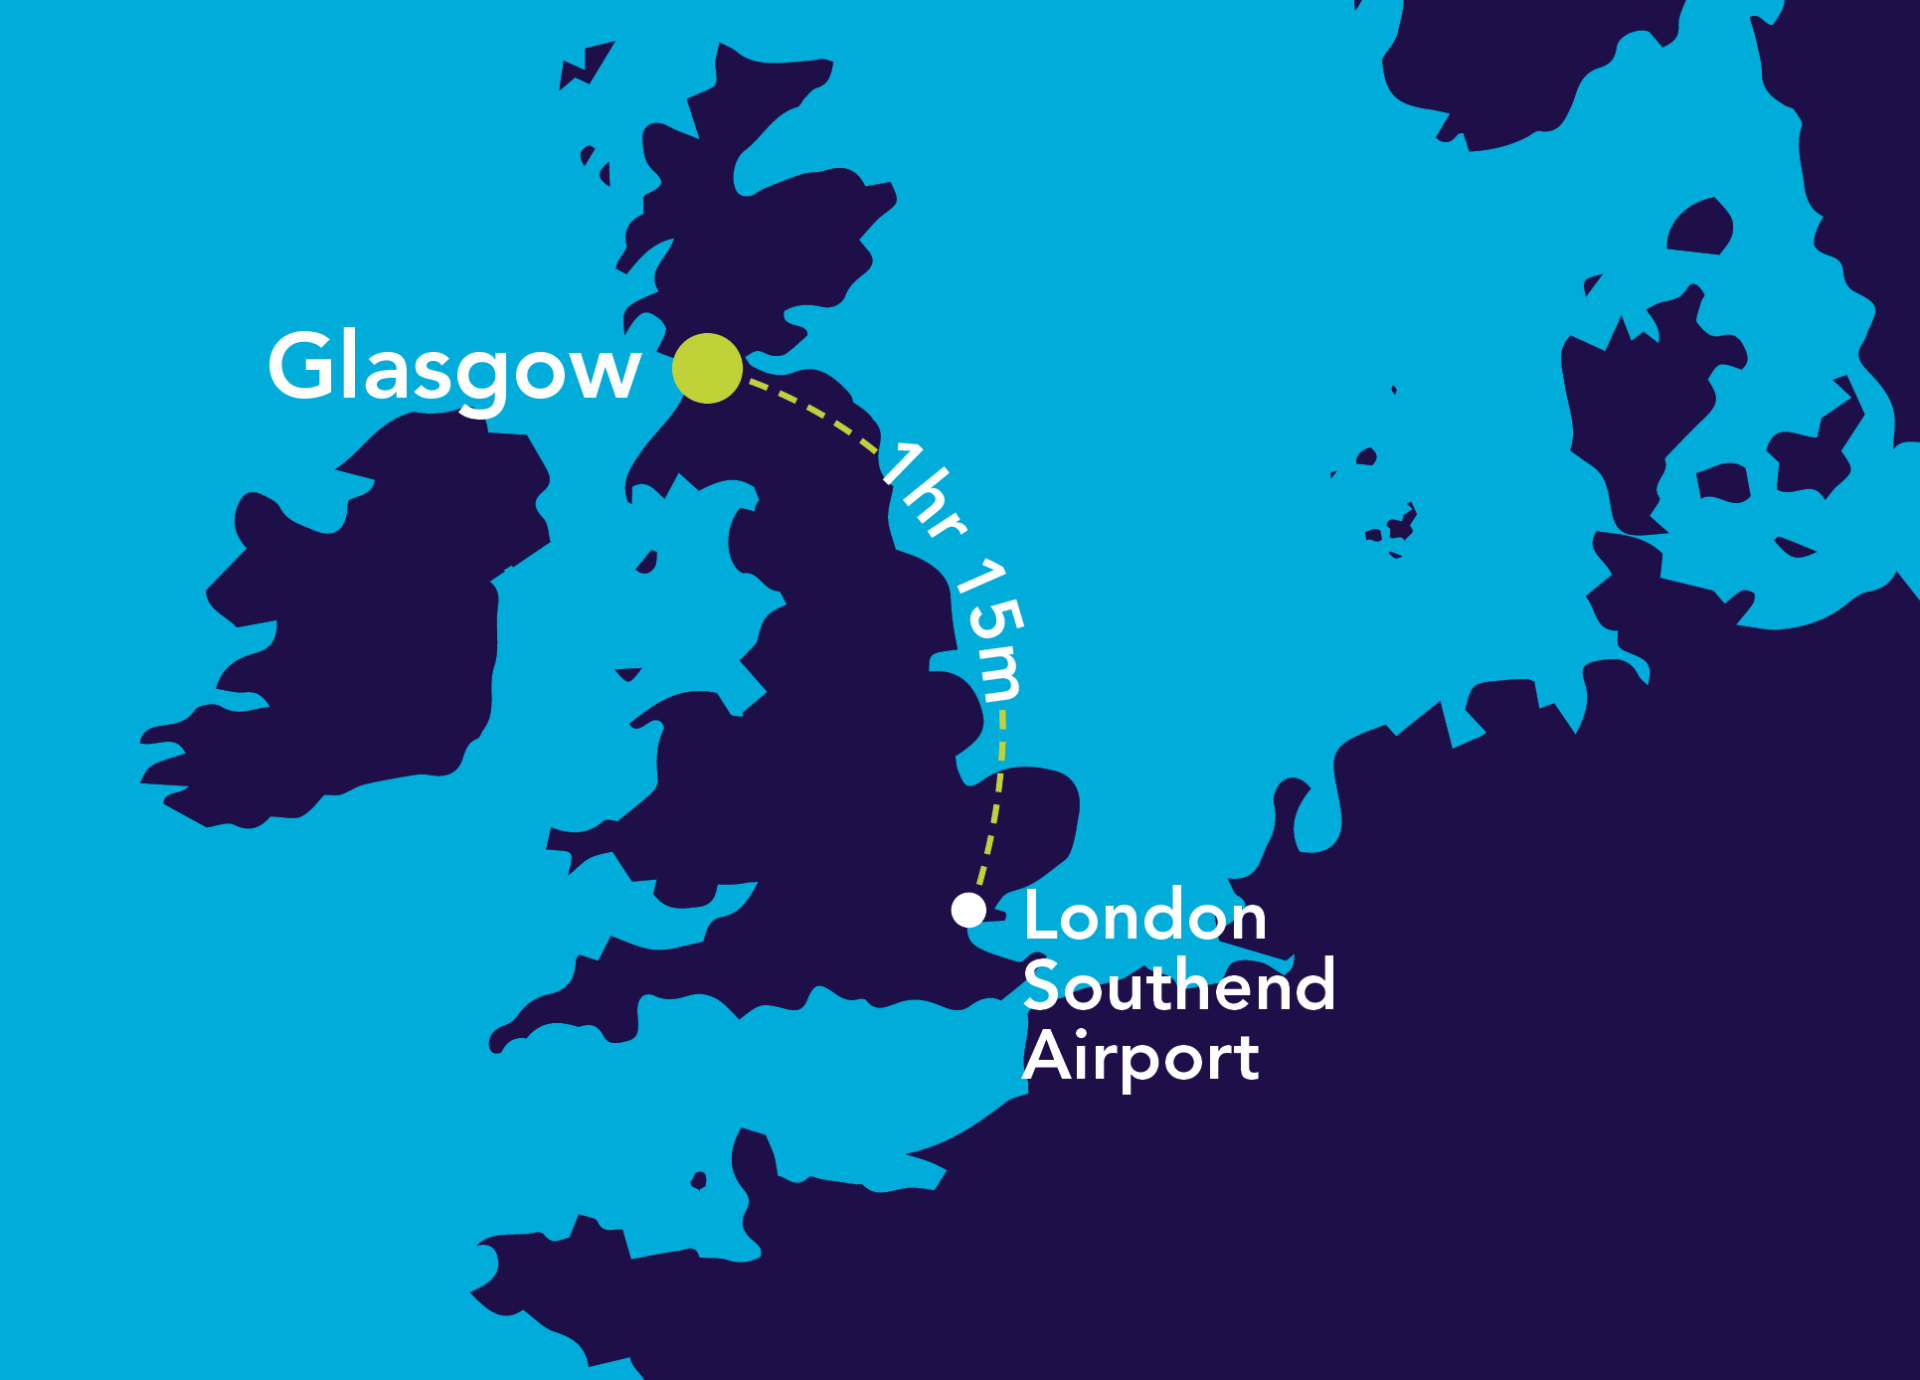 Image of map of London Southend Airport to Glasgow